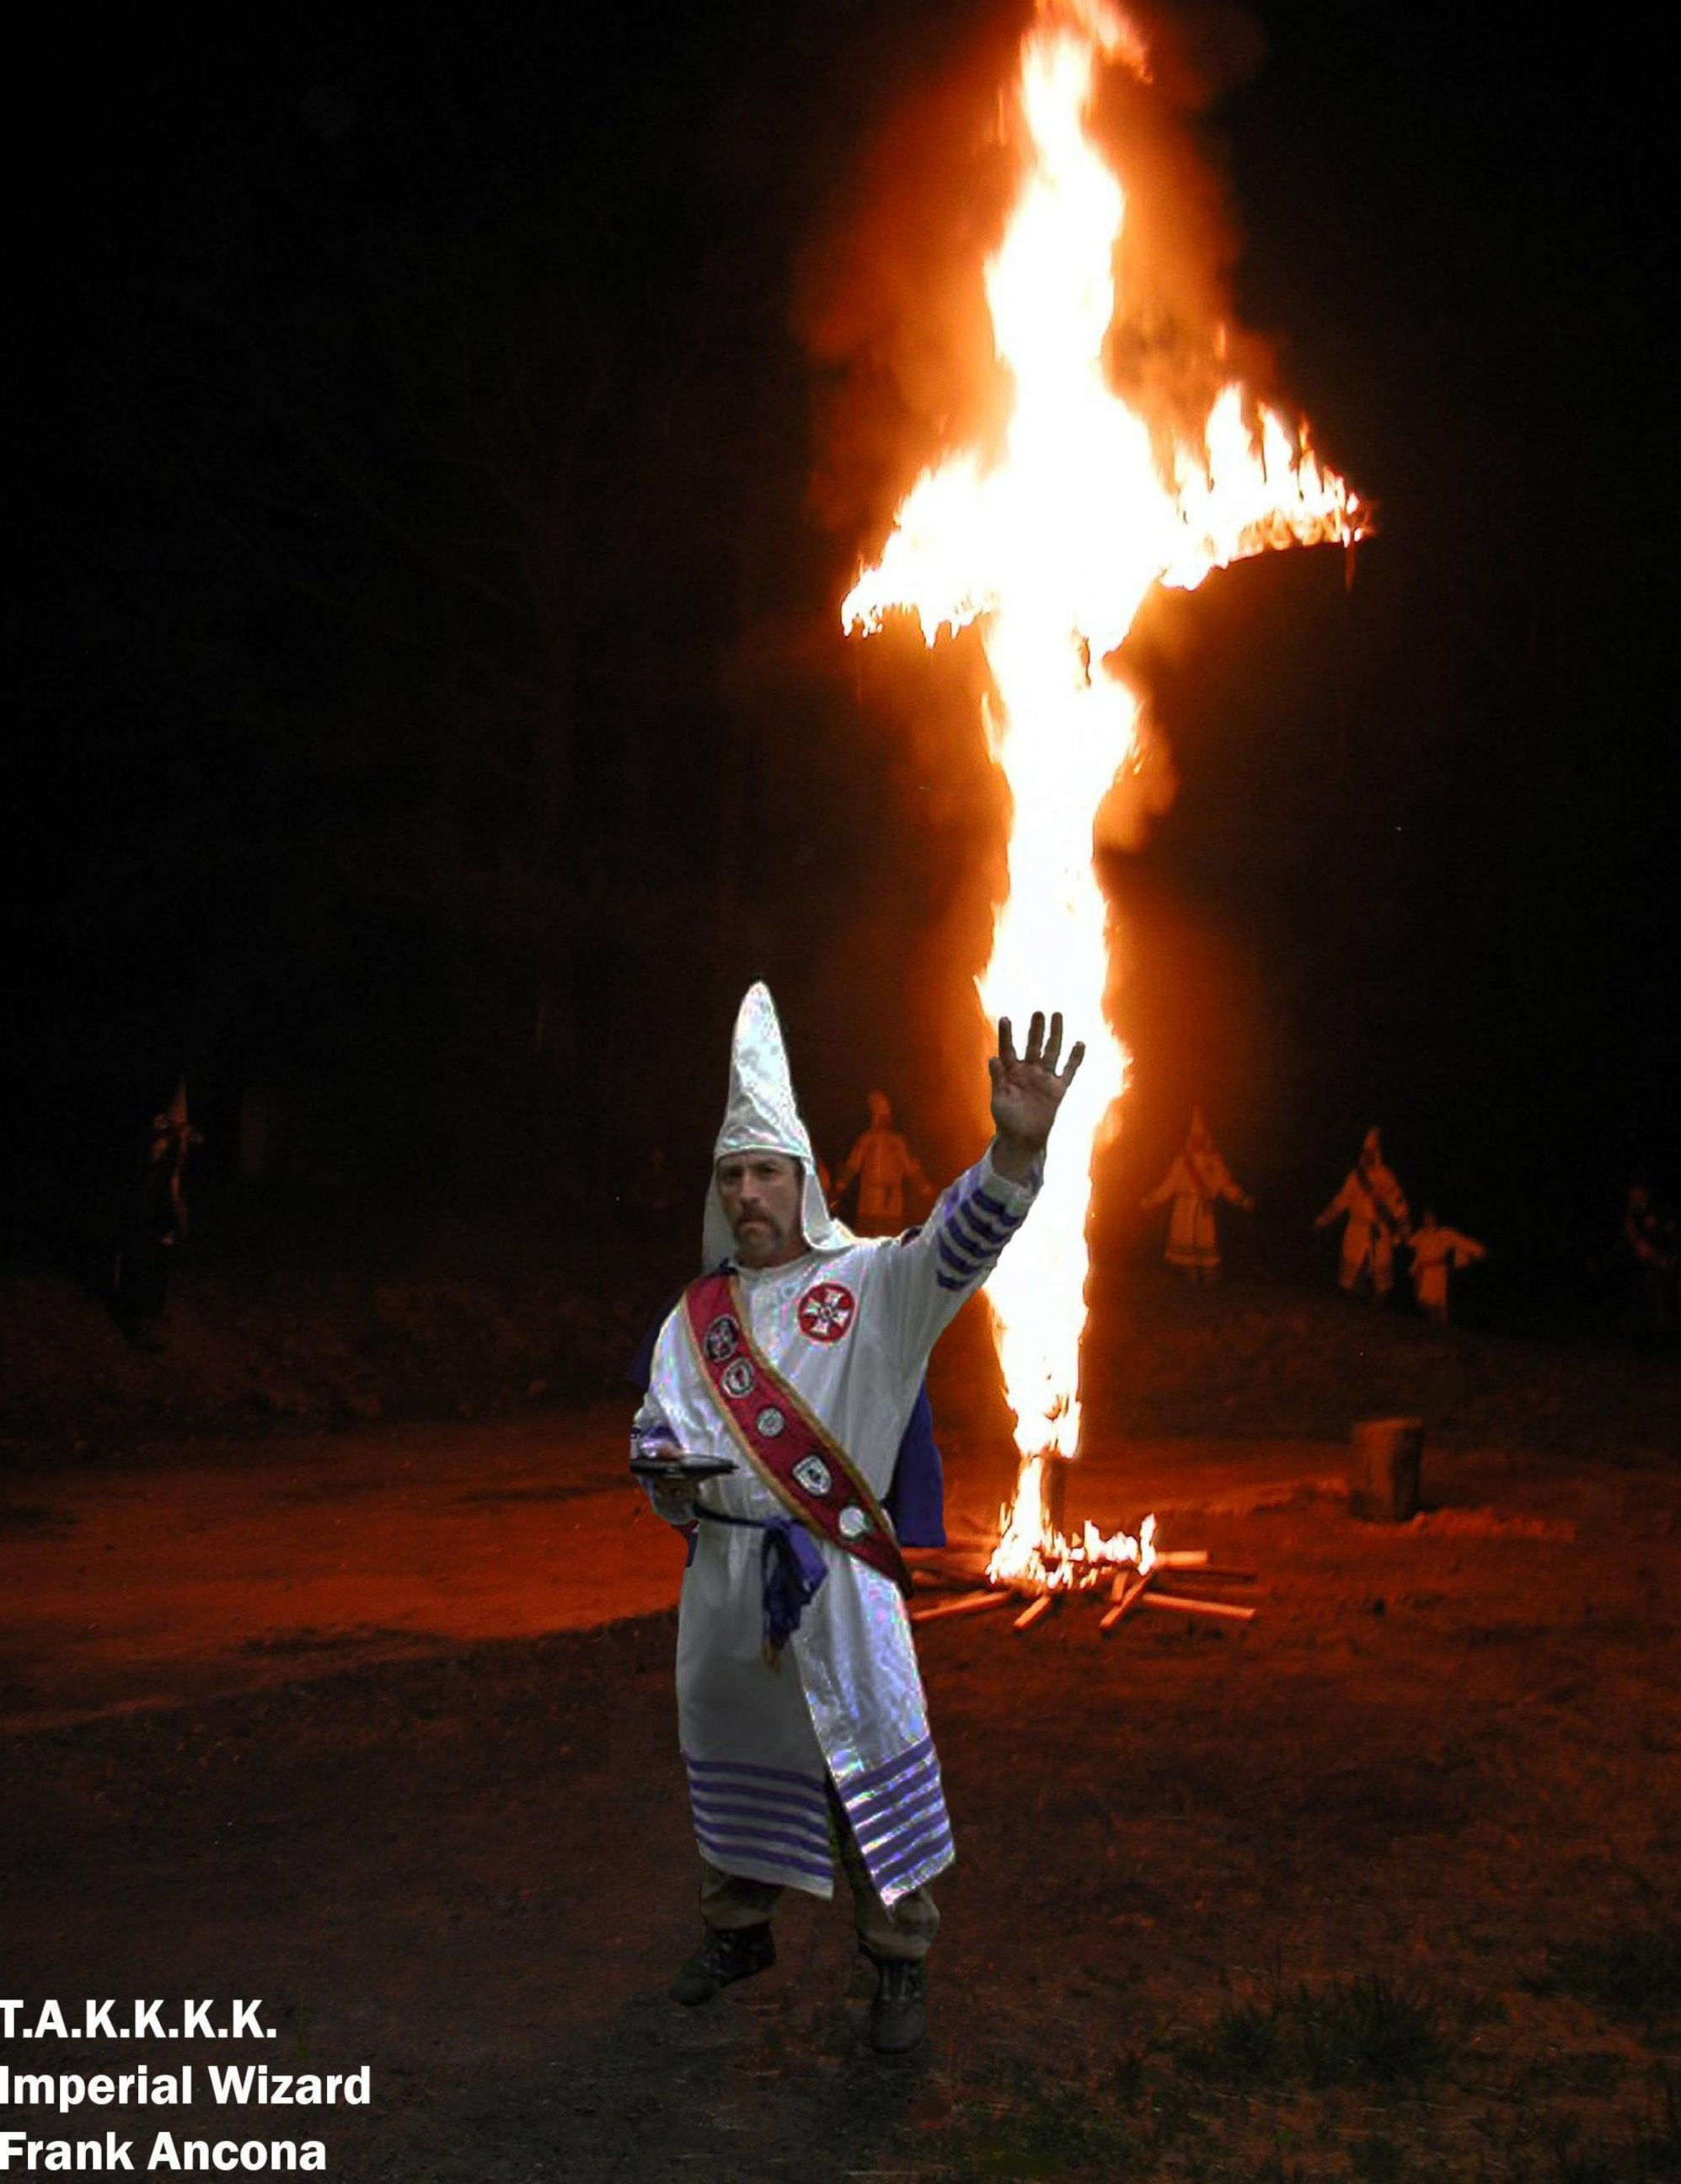 essay on klu klux klan A huge expansion of the klu-klux-klan occurred in the 1910s and 20s it was the  klan's first revival since its founding after the civil war.